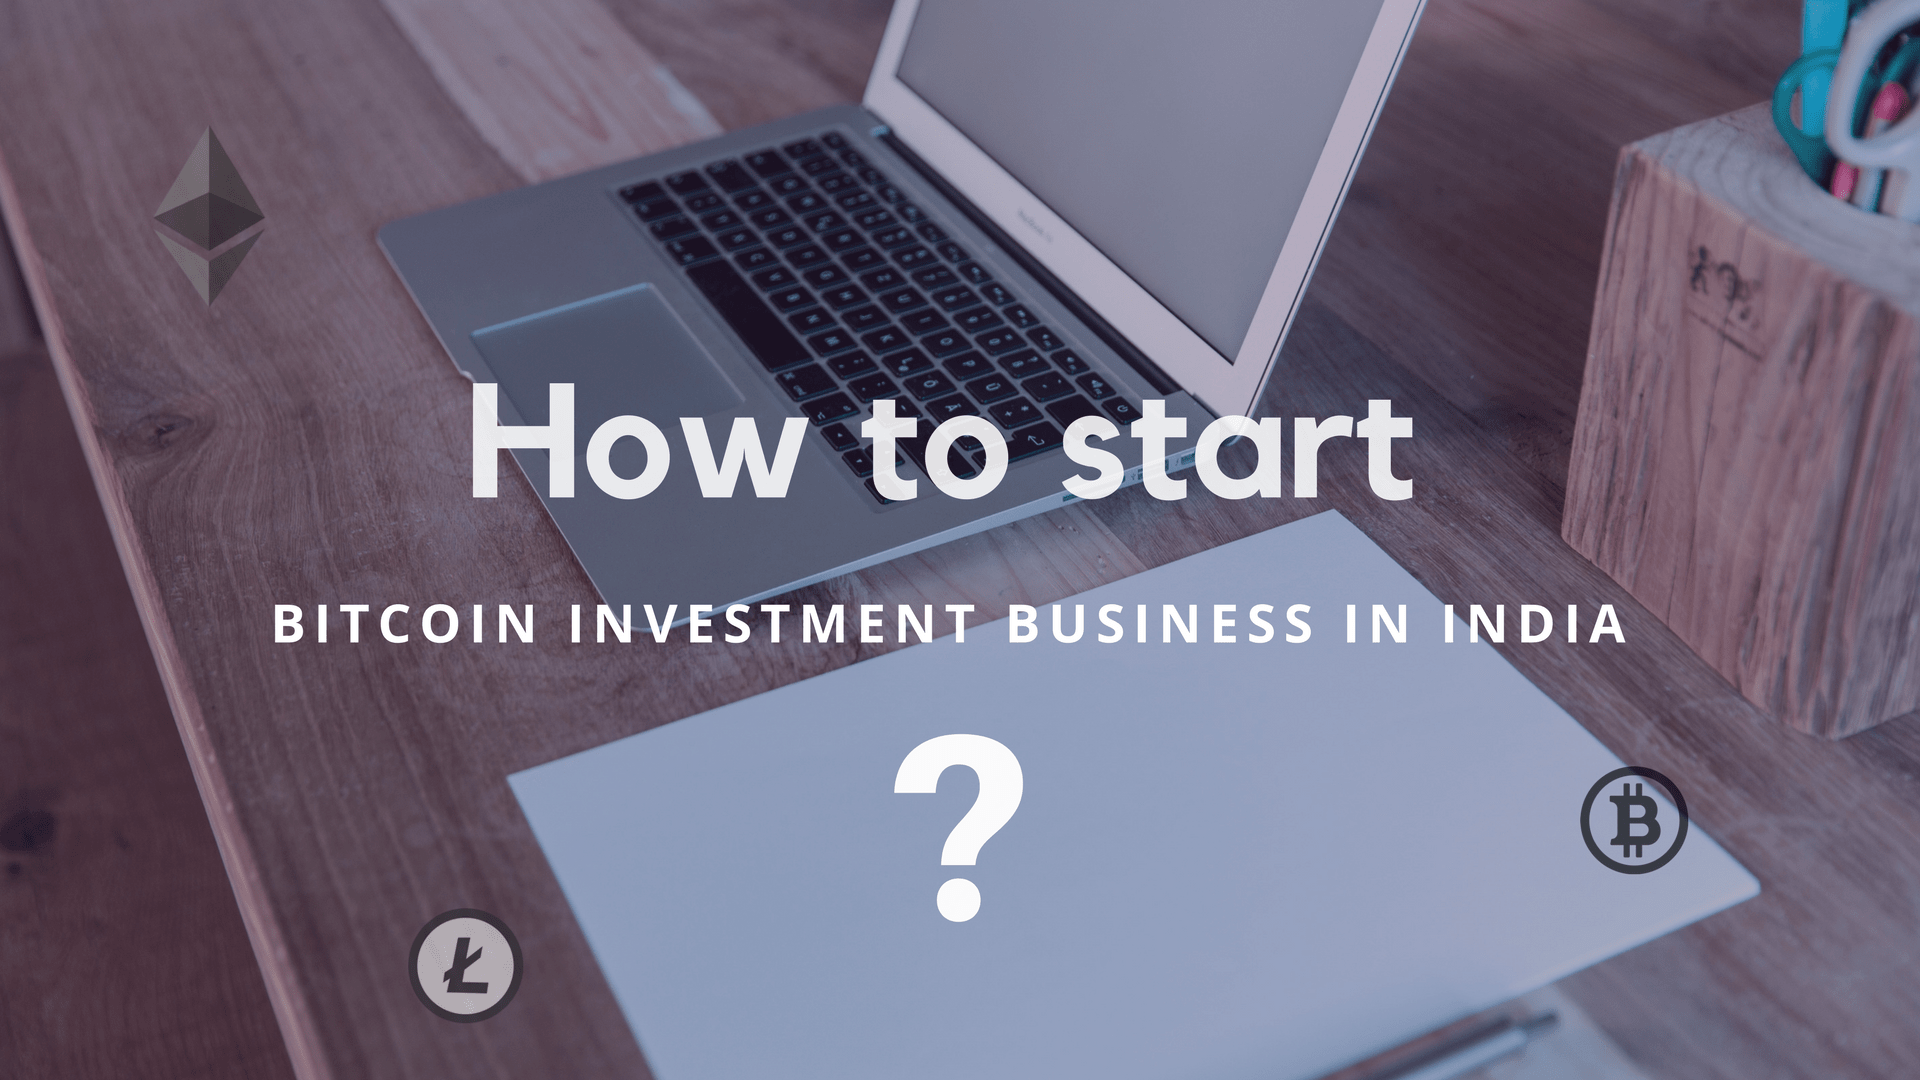 How to start a business with bitcoin investment in India and make money in the short period ?